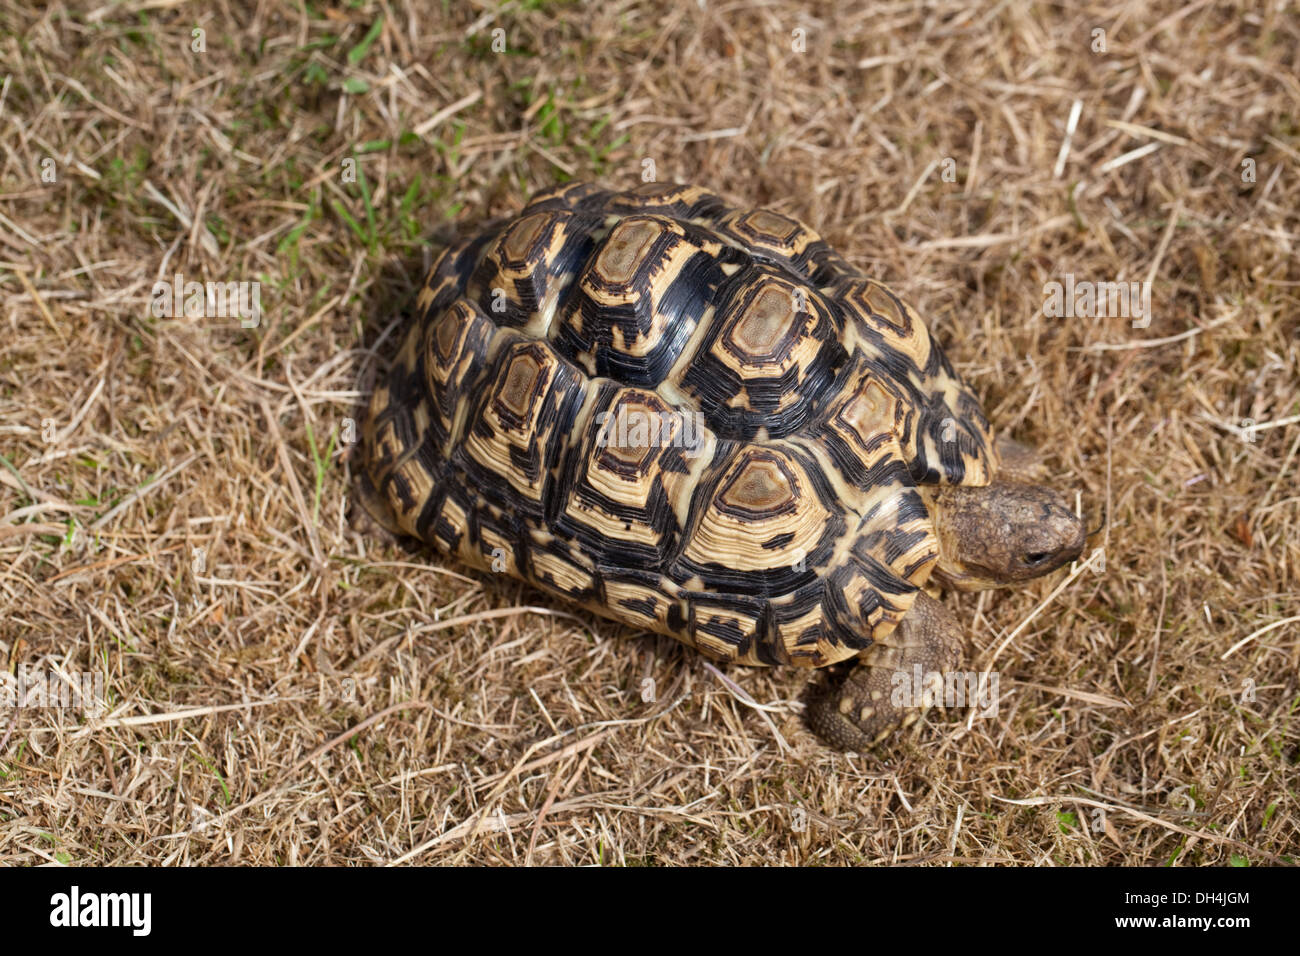 Leopard Tortoise (Geochelone pardalis). Illustrating how cryptic carapace markings help brake up outline against a dry habitat. - Stock Image